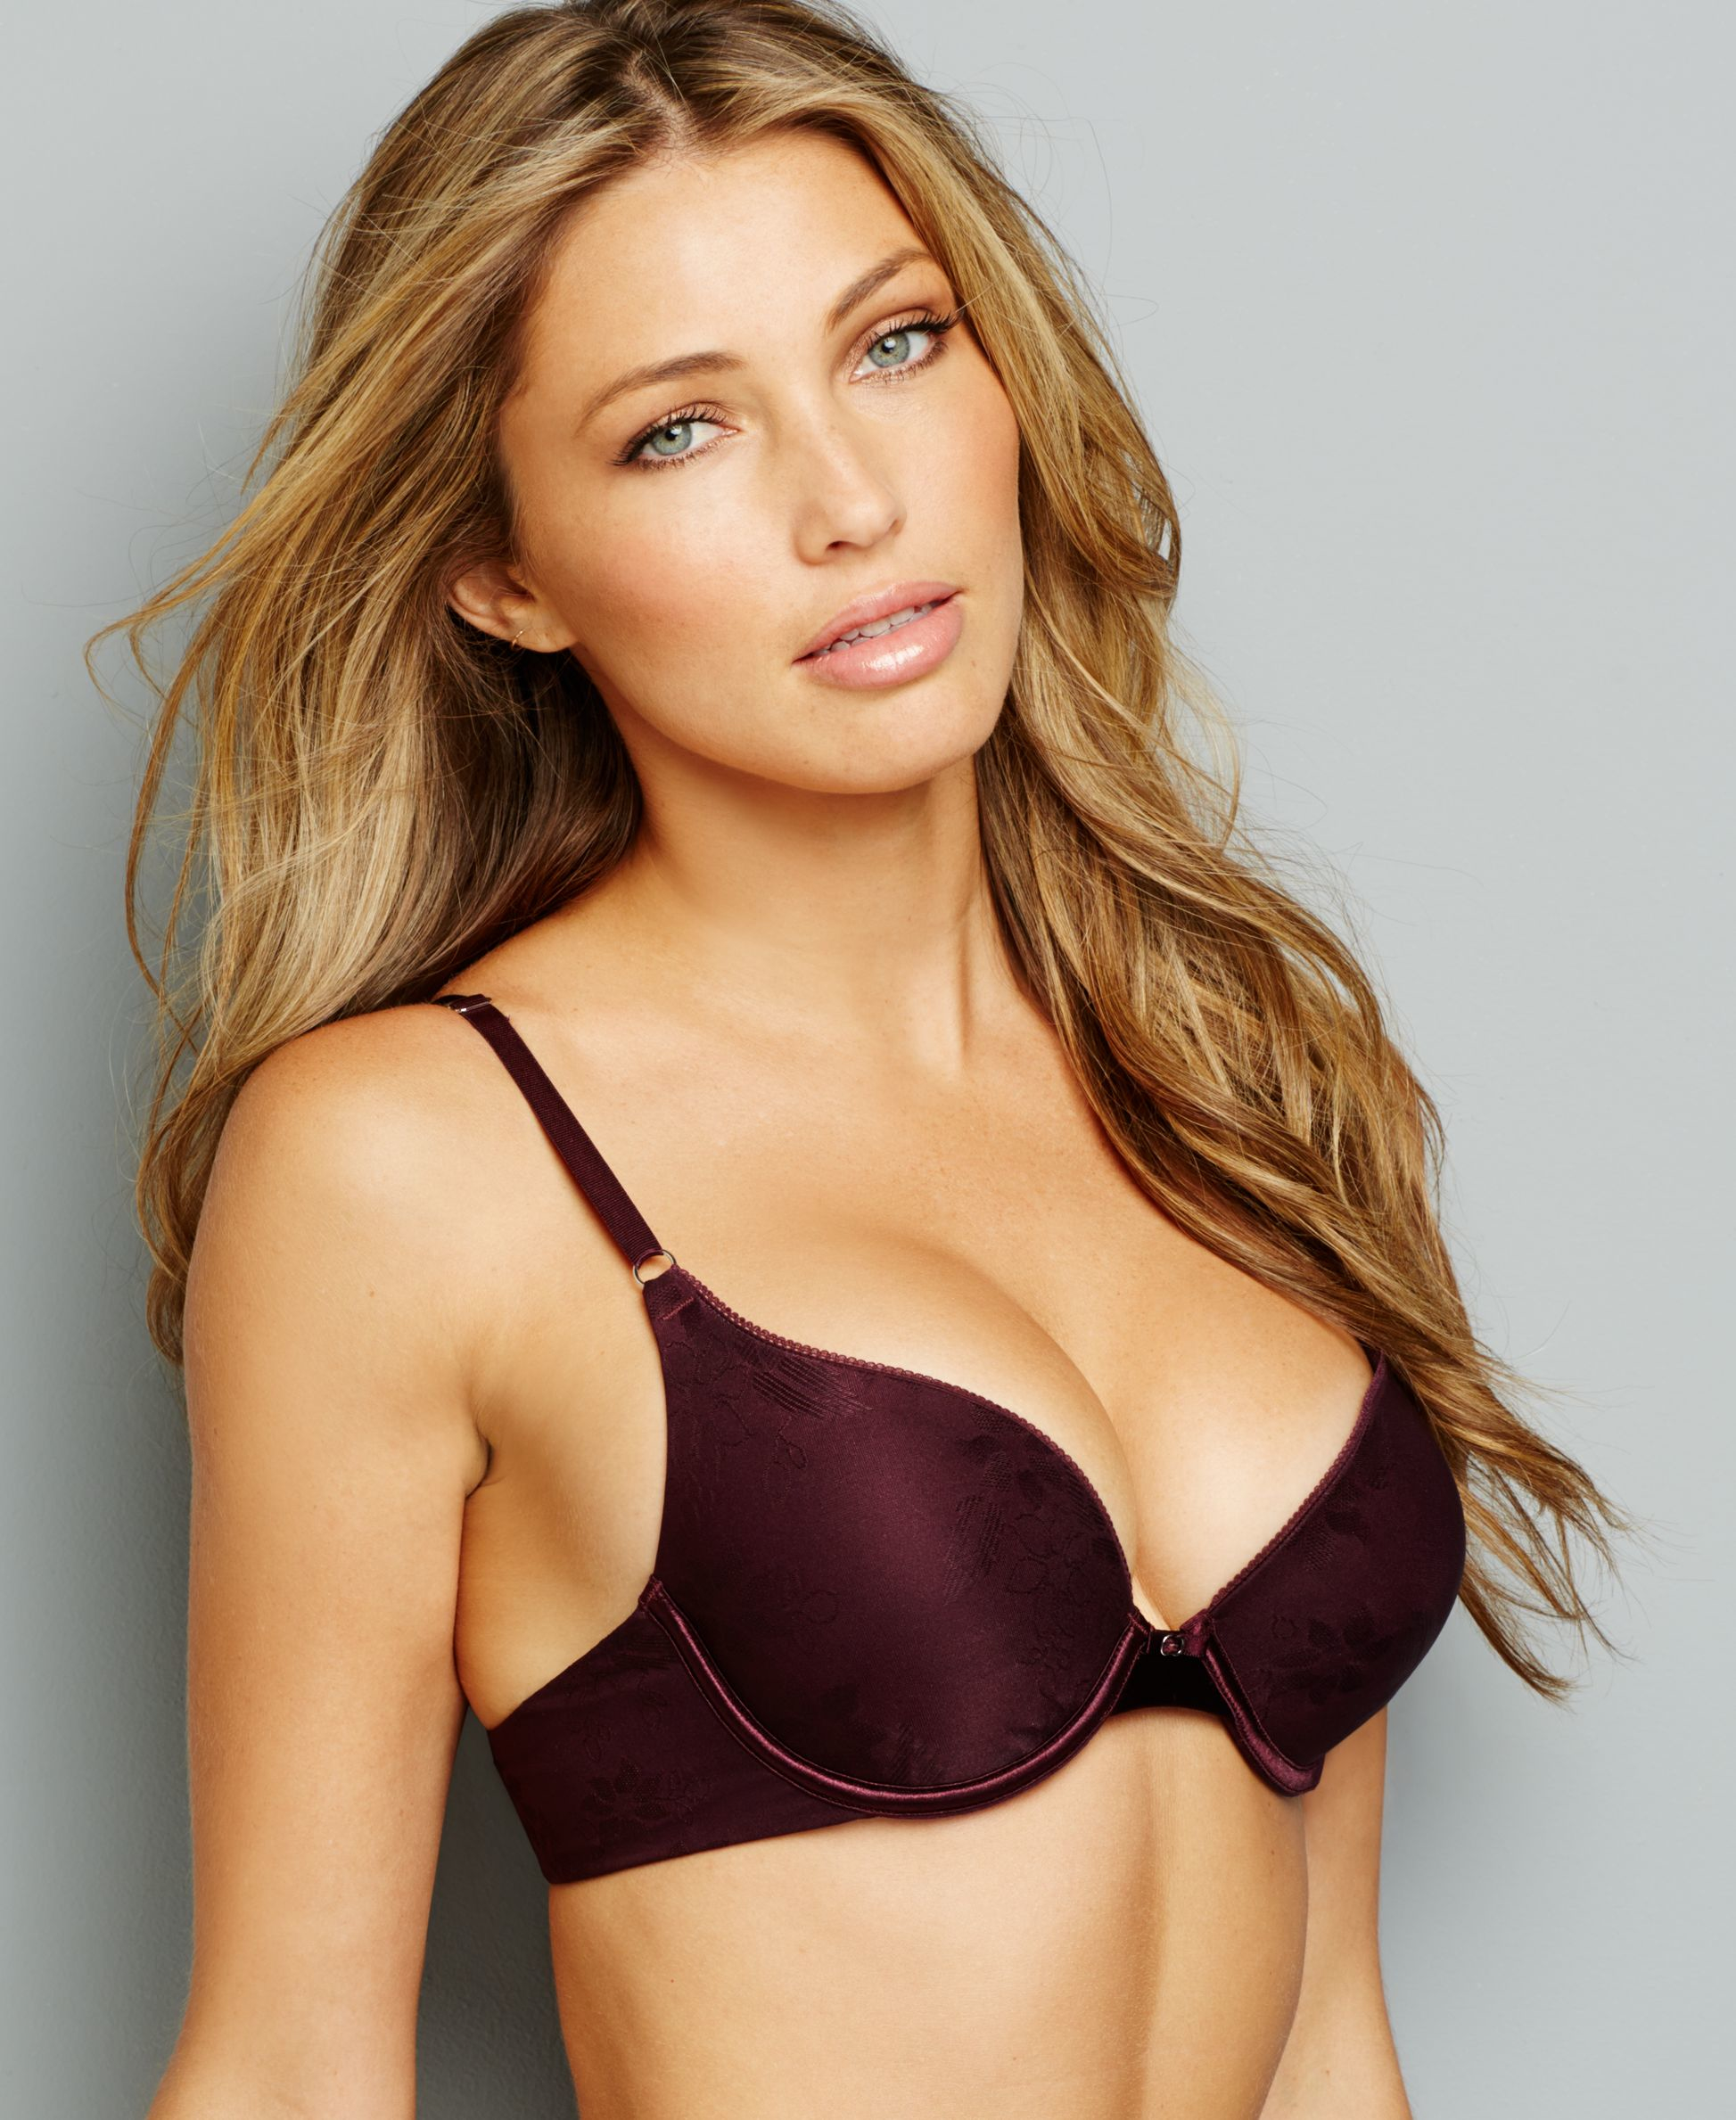 f5188b11c9ece Lyst - Lily Of France Extreme Ego Boost Tailored Push Up Bra 2131101 ...